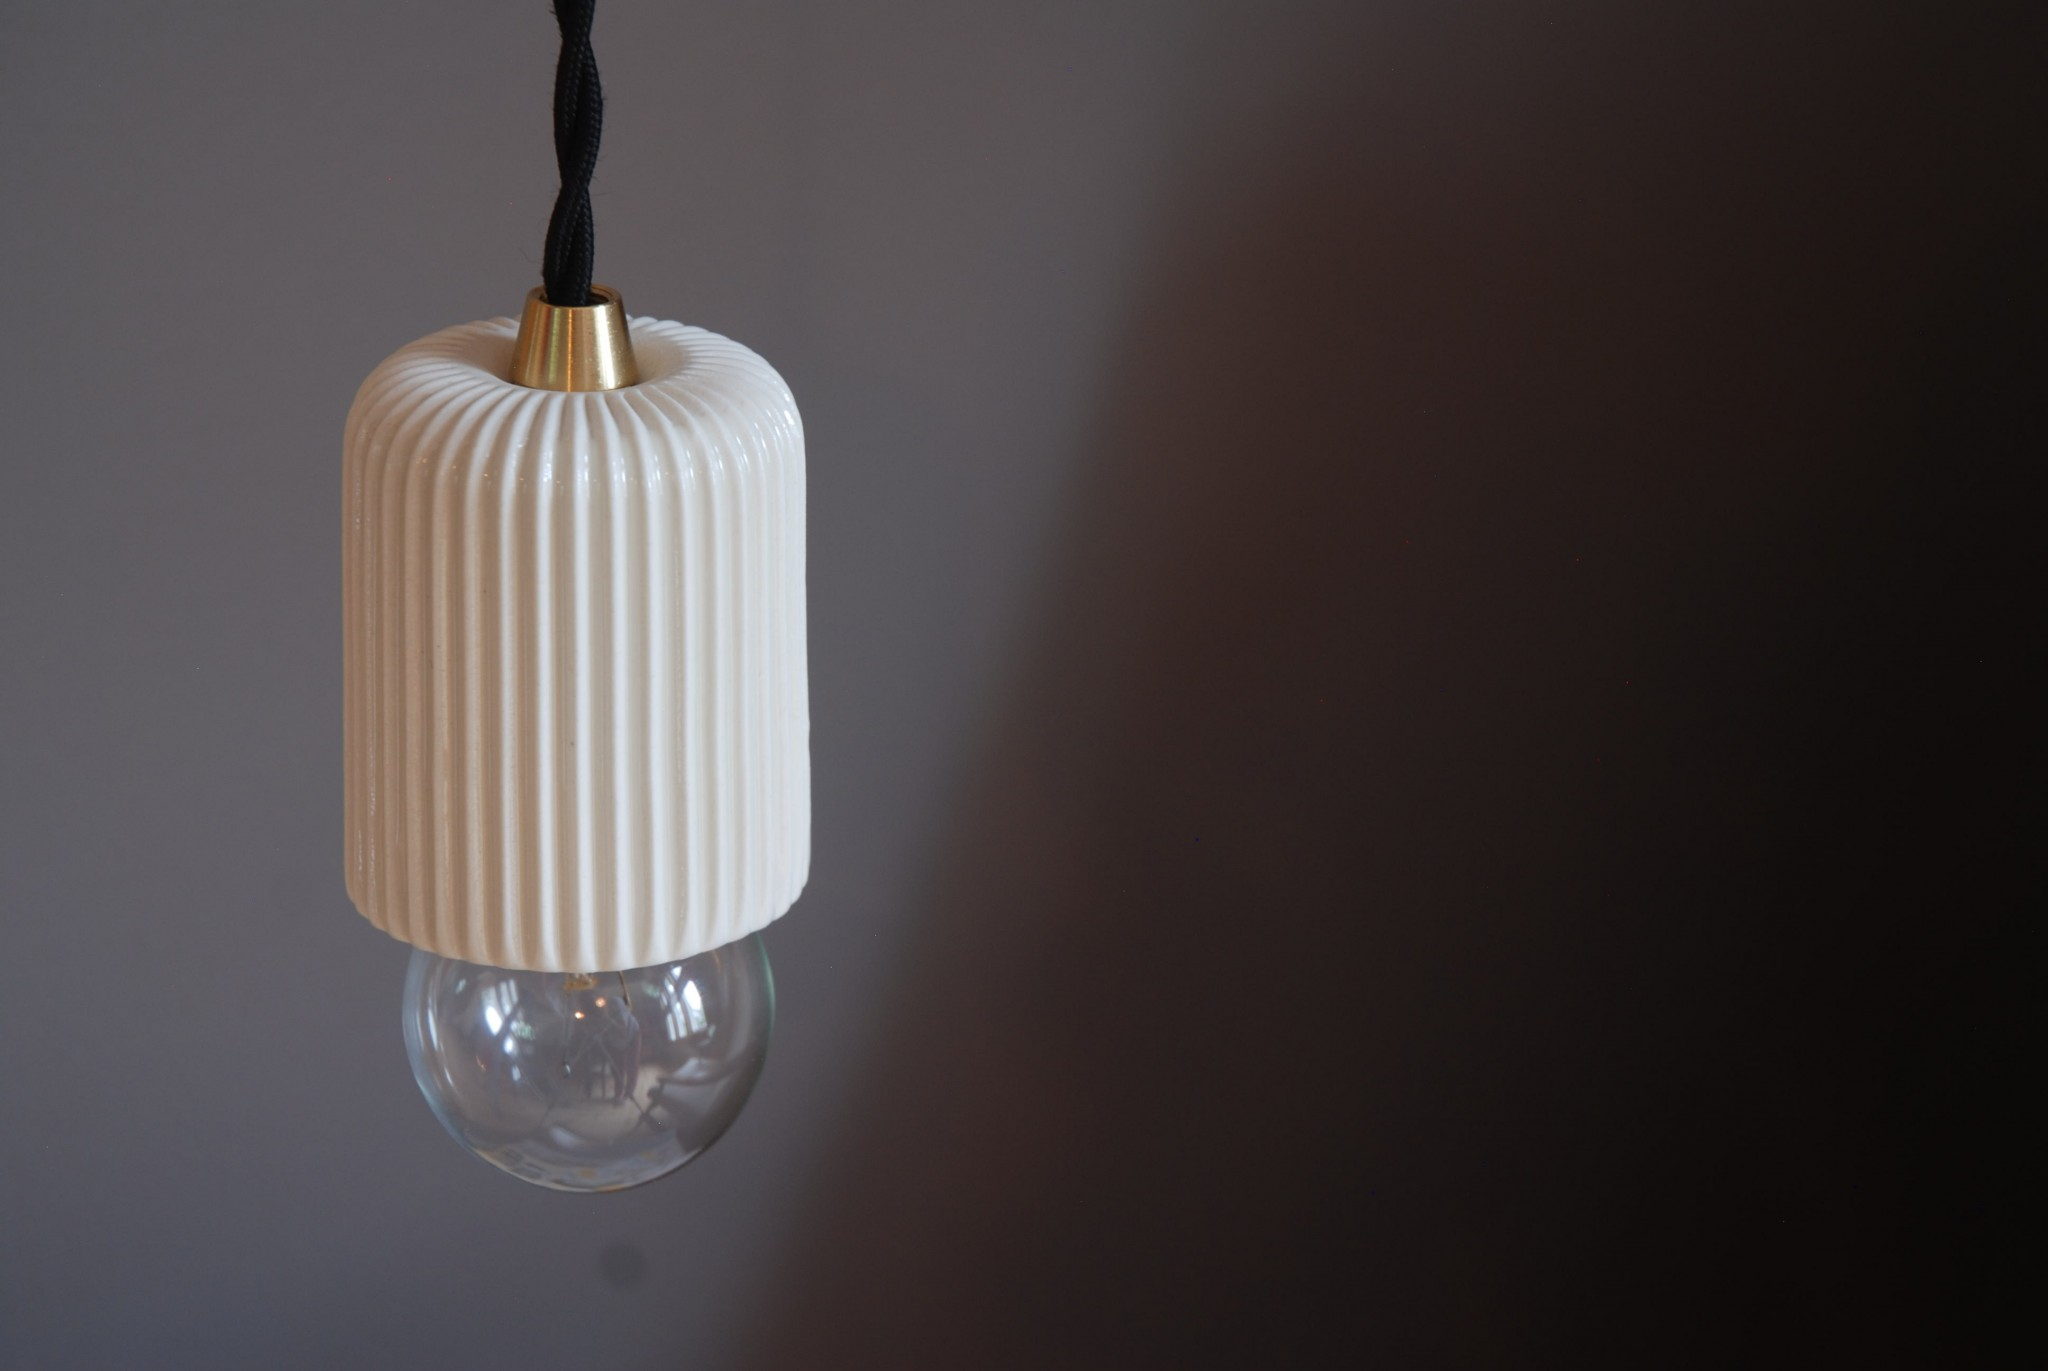 Art & Manufacture Pleated pendant light